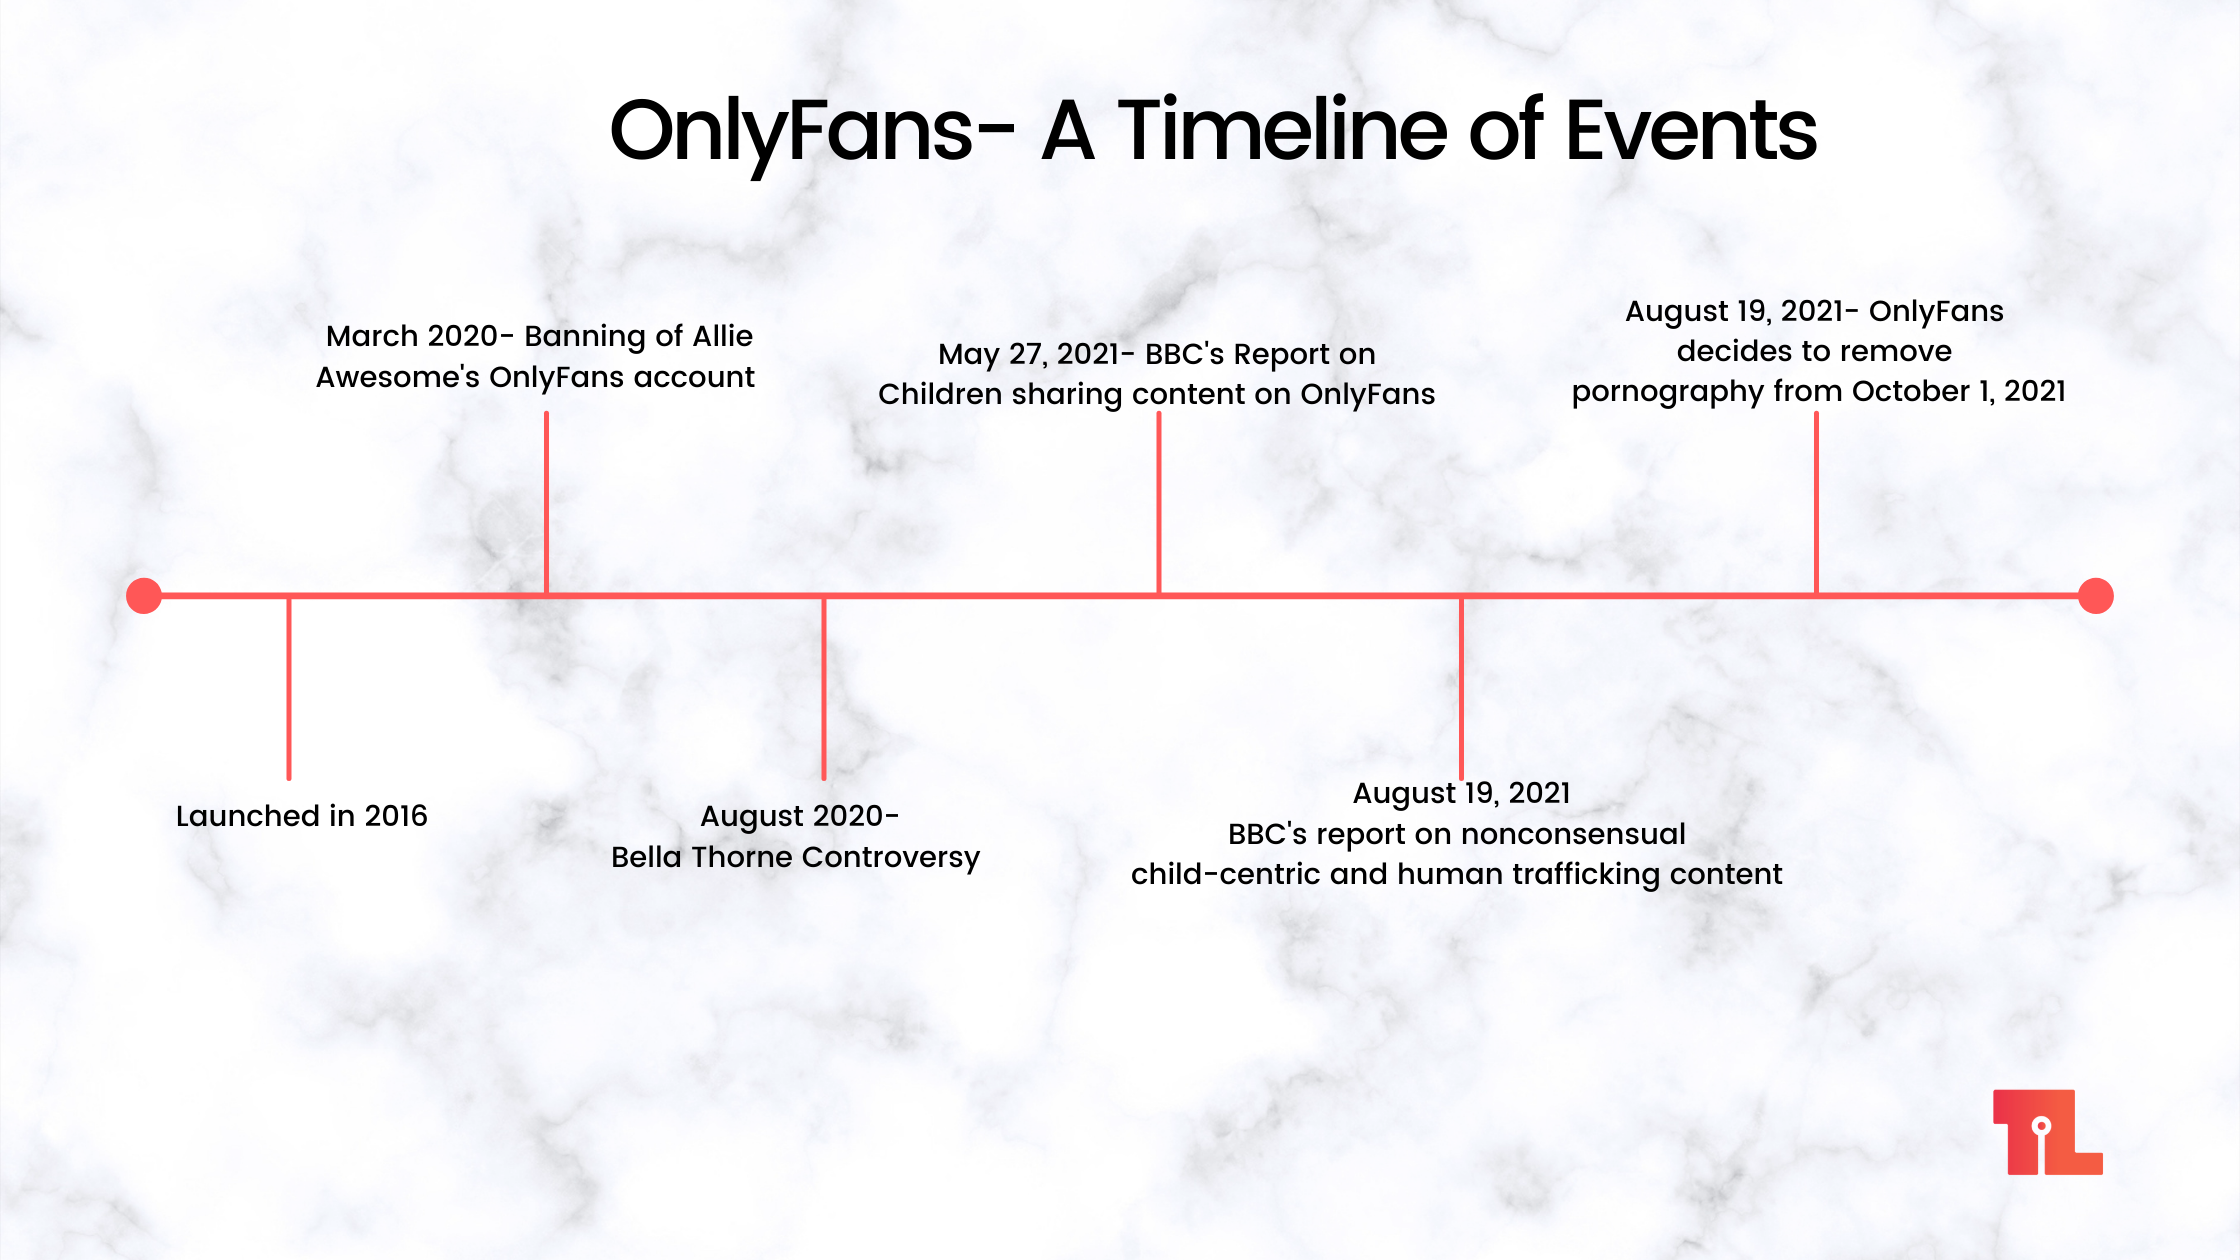 A timeline of controversies and events associated with OnlyFans|OnlyFans|OnlyFans controversy|